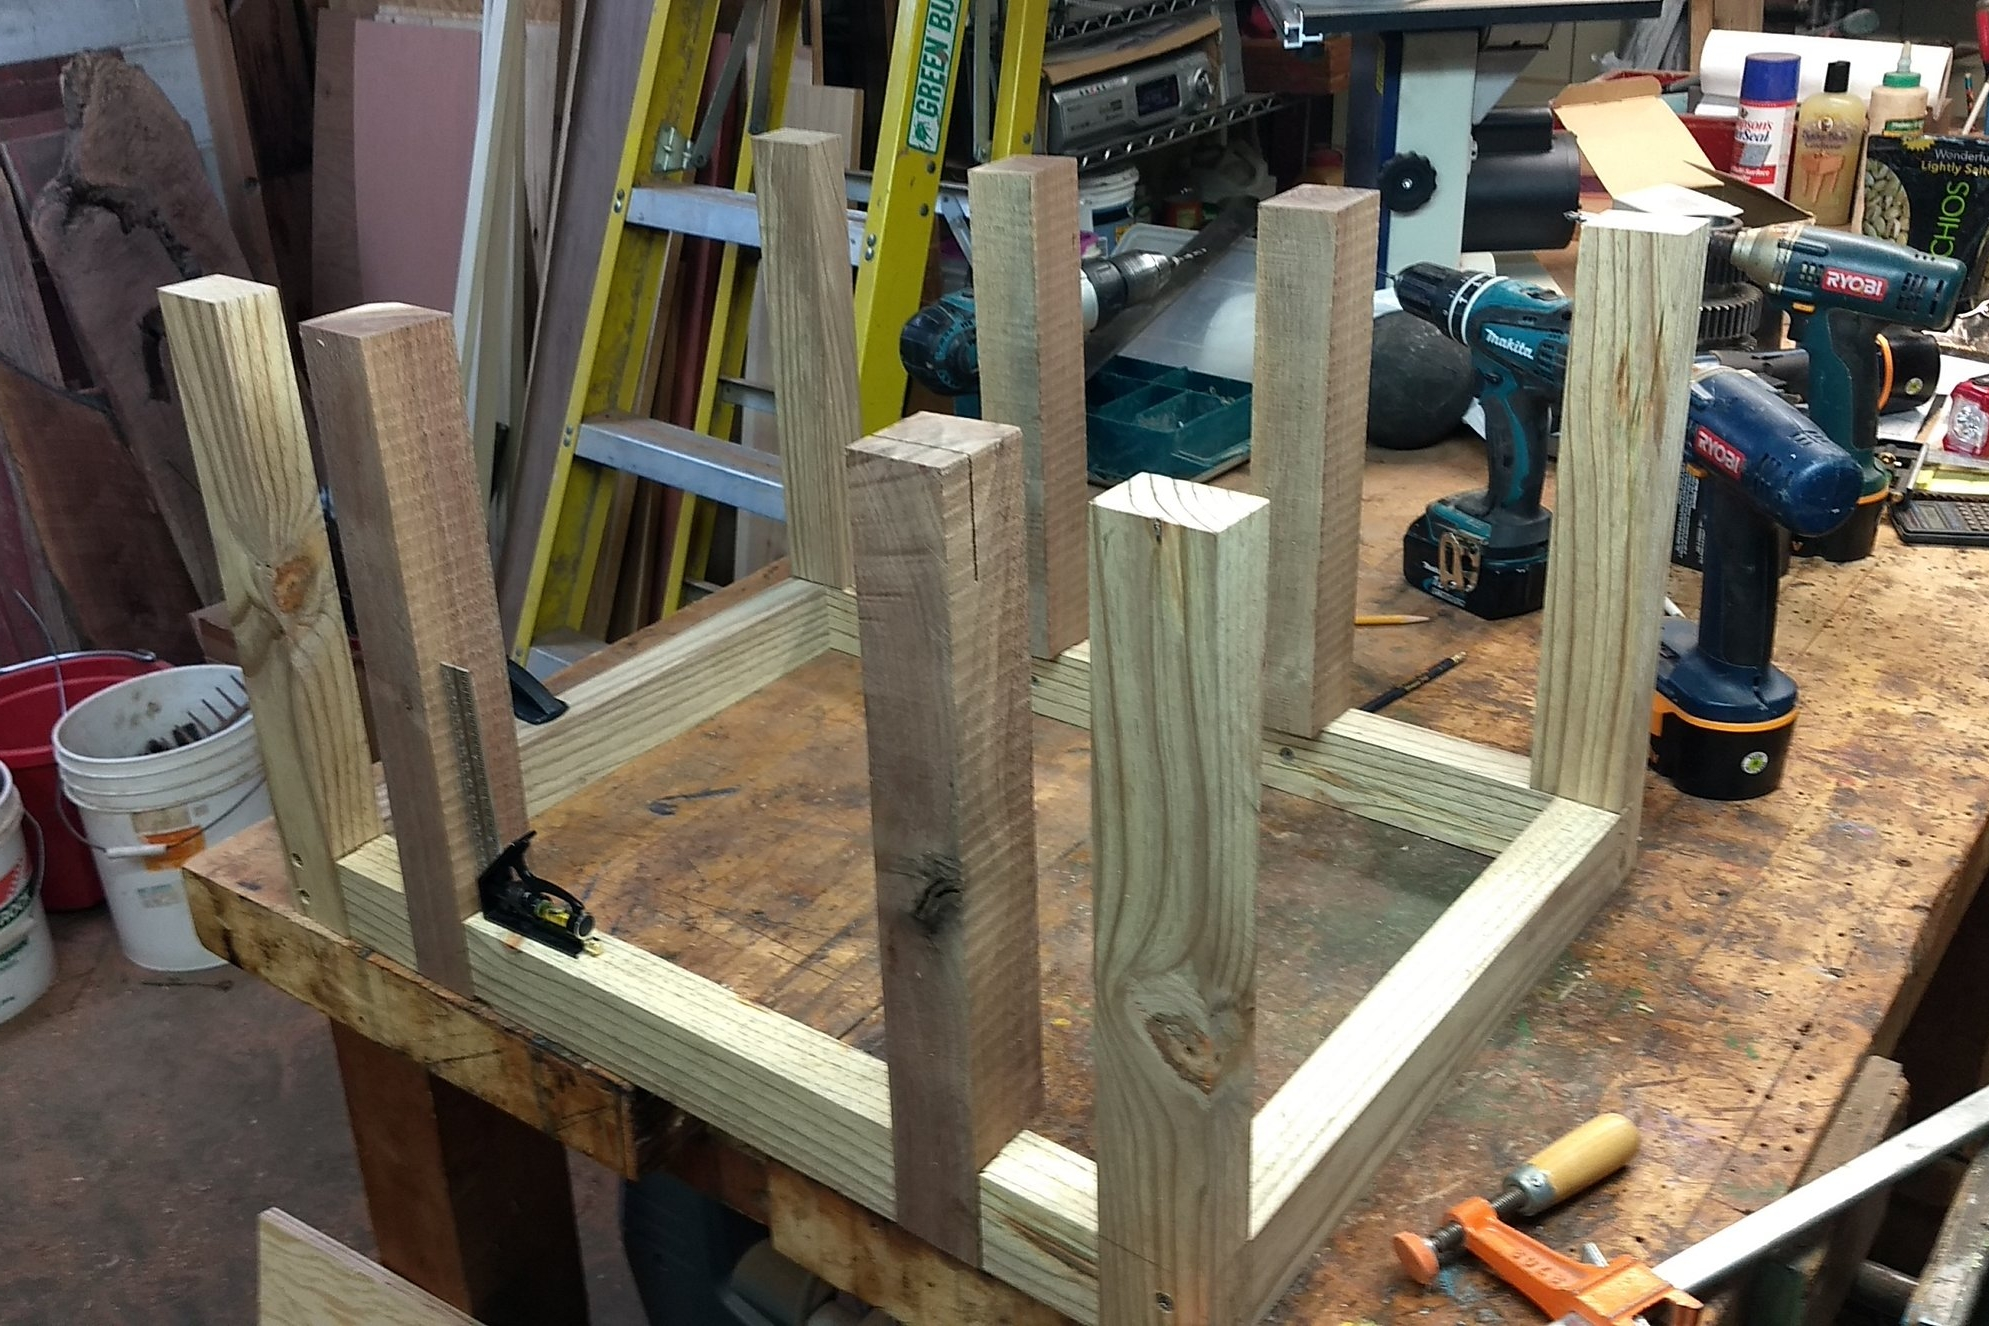 This is the early stage of the internal structure. The boards are to represent scaled-down posts or timbers from a covered bridge. The rough-sawn walnut posts will provide visual and tactile effect for the users. Much of the structure will be visible inside the library.